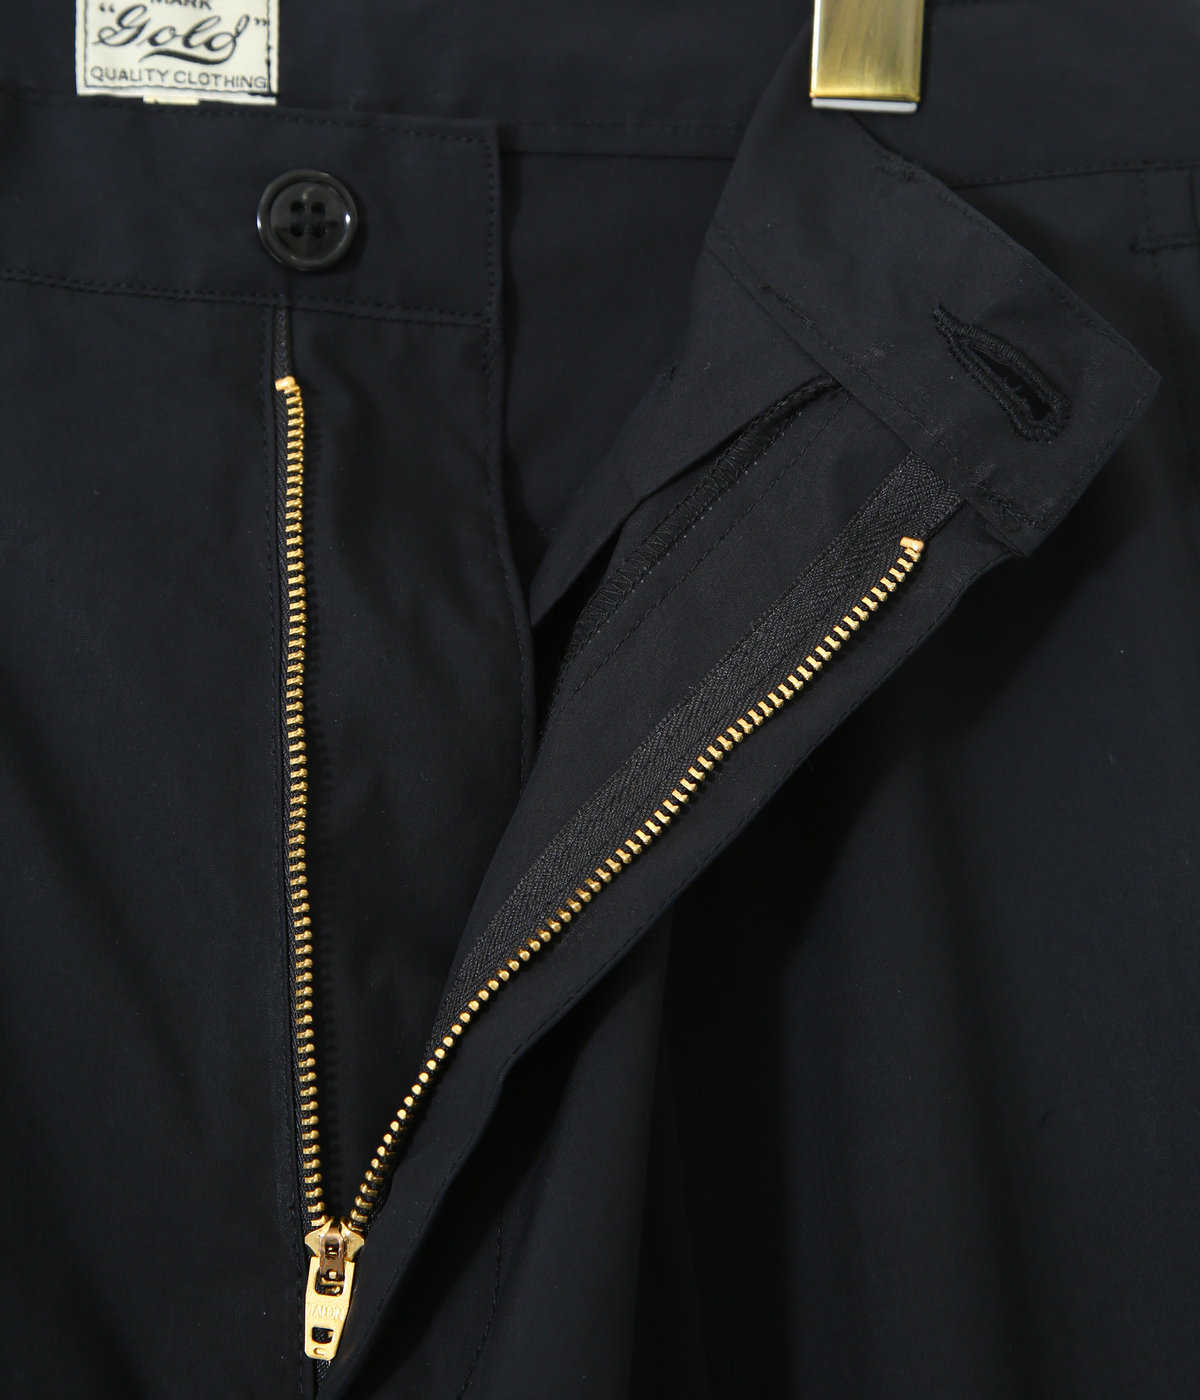 【予約】STRETCH WEATHER CLOTH OFFICER PANTS